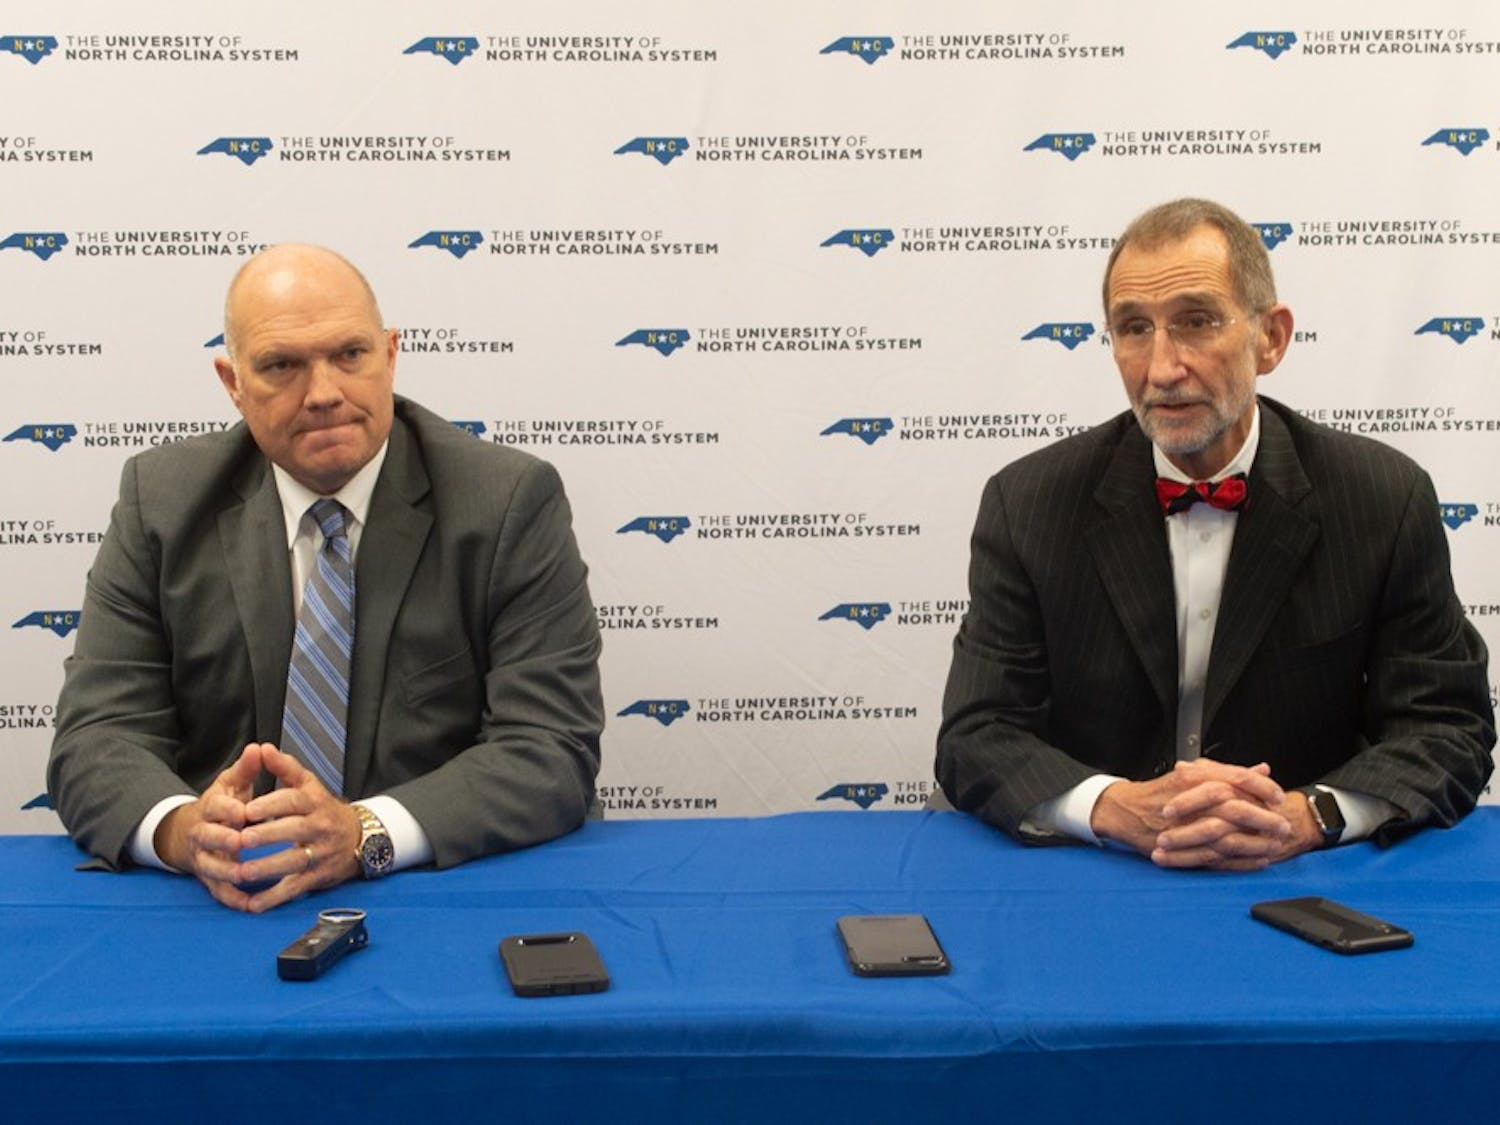 Chair person of the board Harry Smith Jr. and Interim President Bill Roper answer questions after the UNC system Board of Governors meeting.